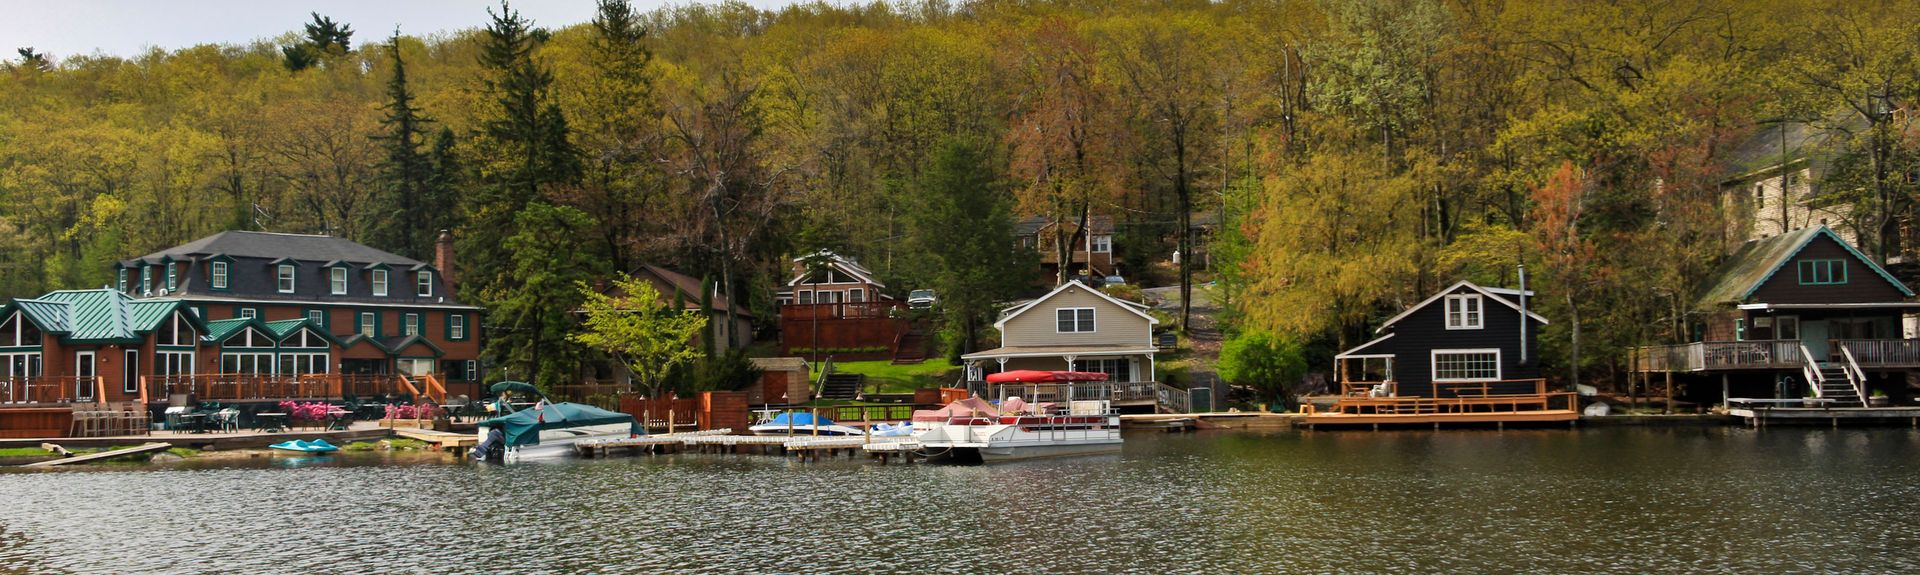 Lake Harmony Pa Vacation Rentals House Rentals More Vrbo